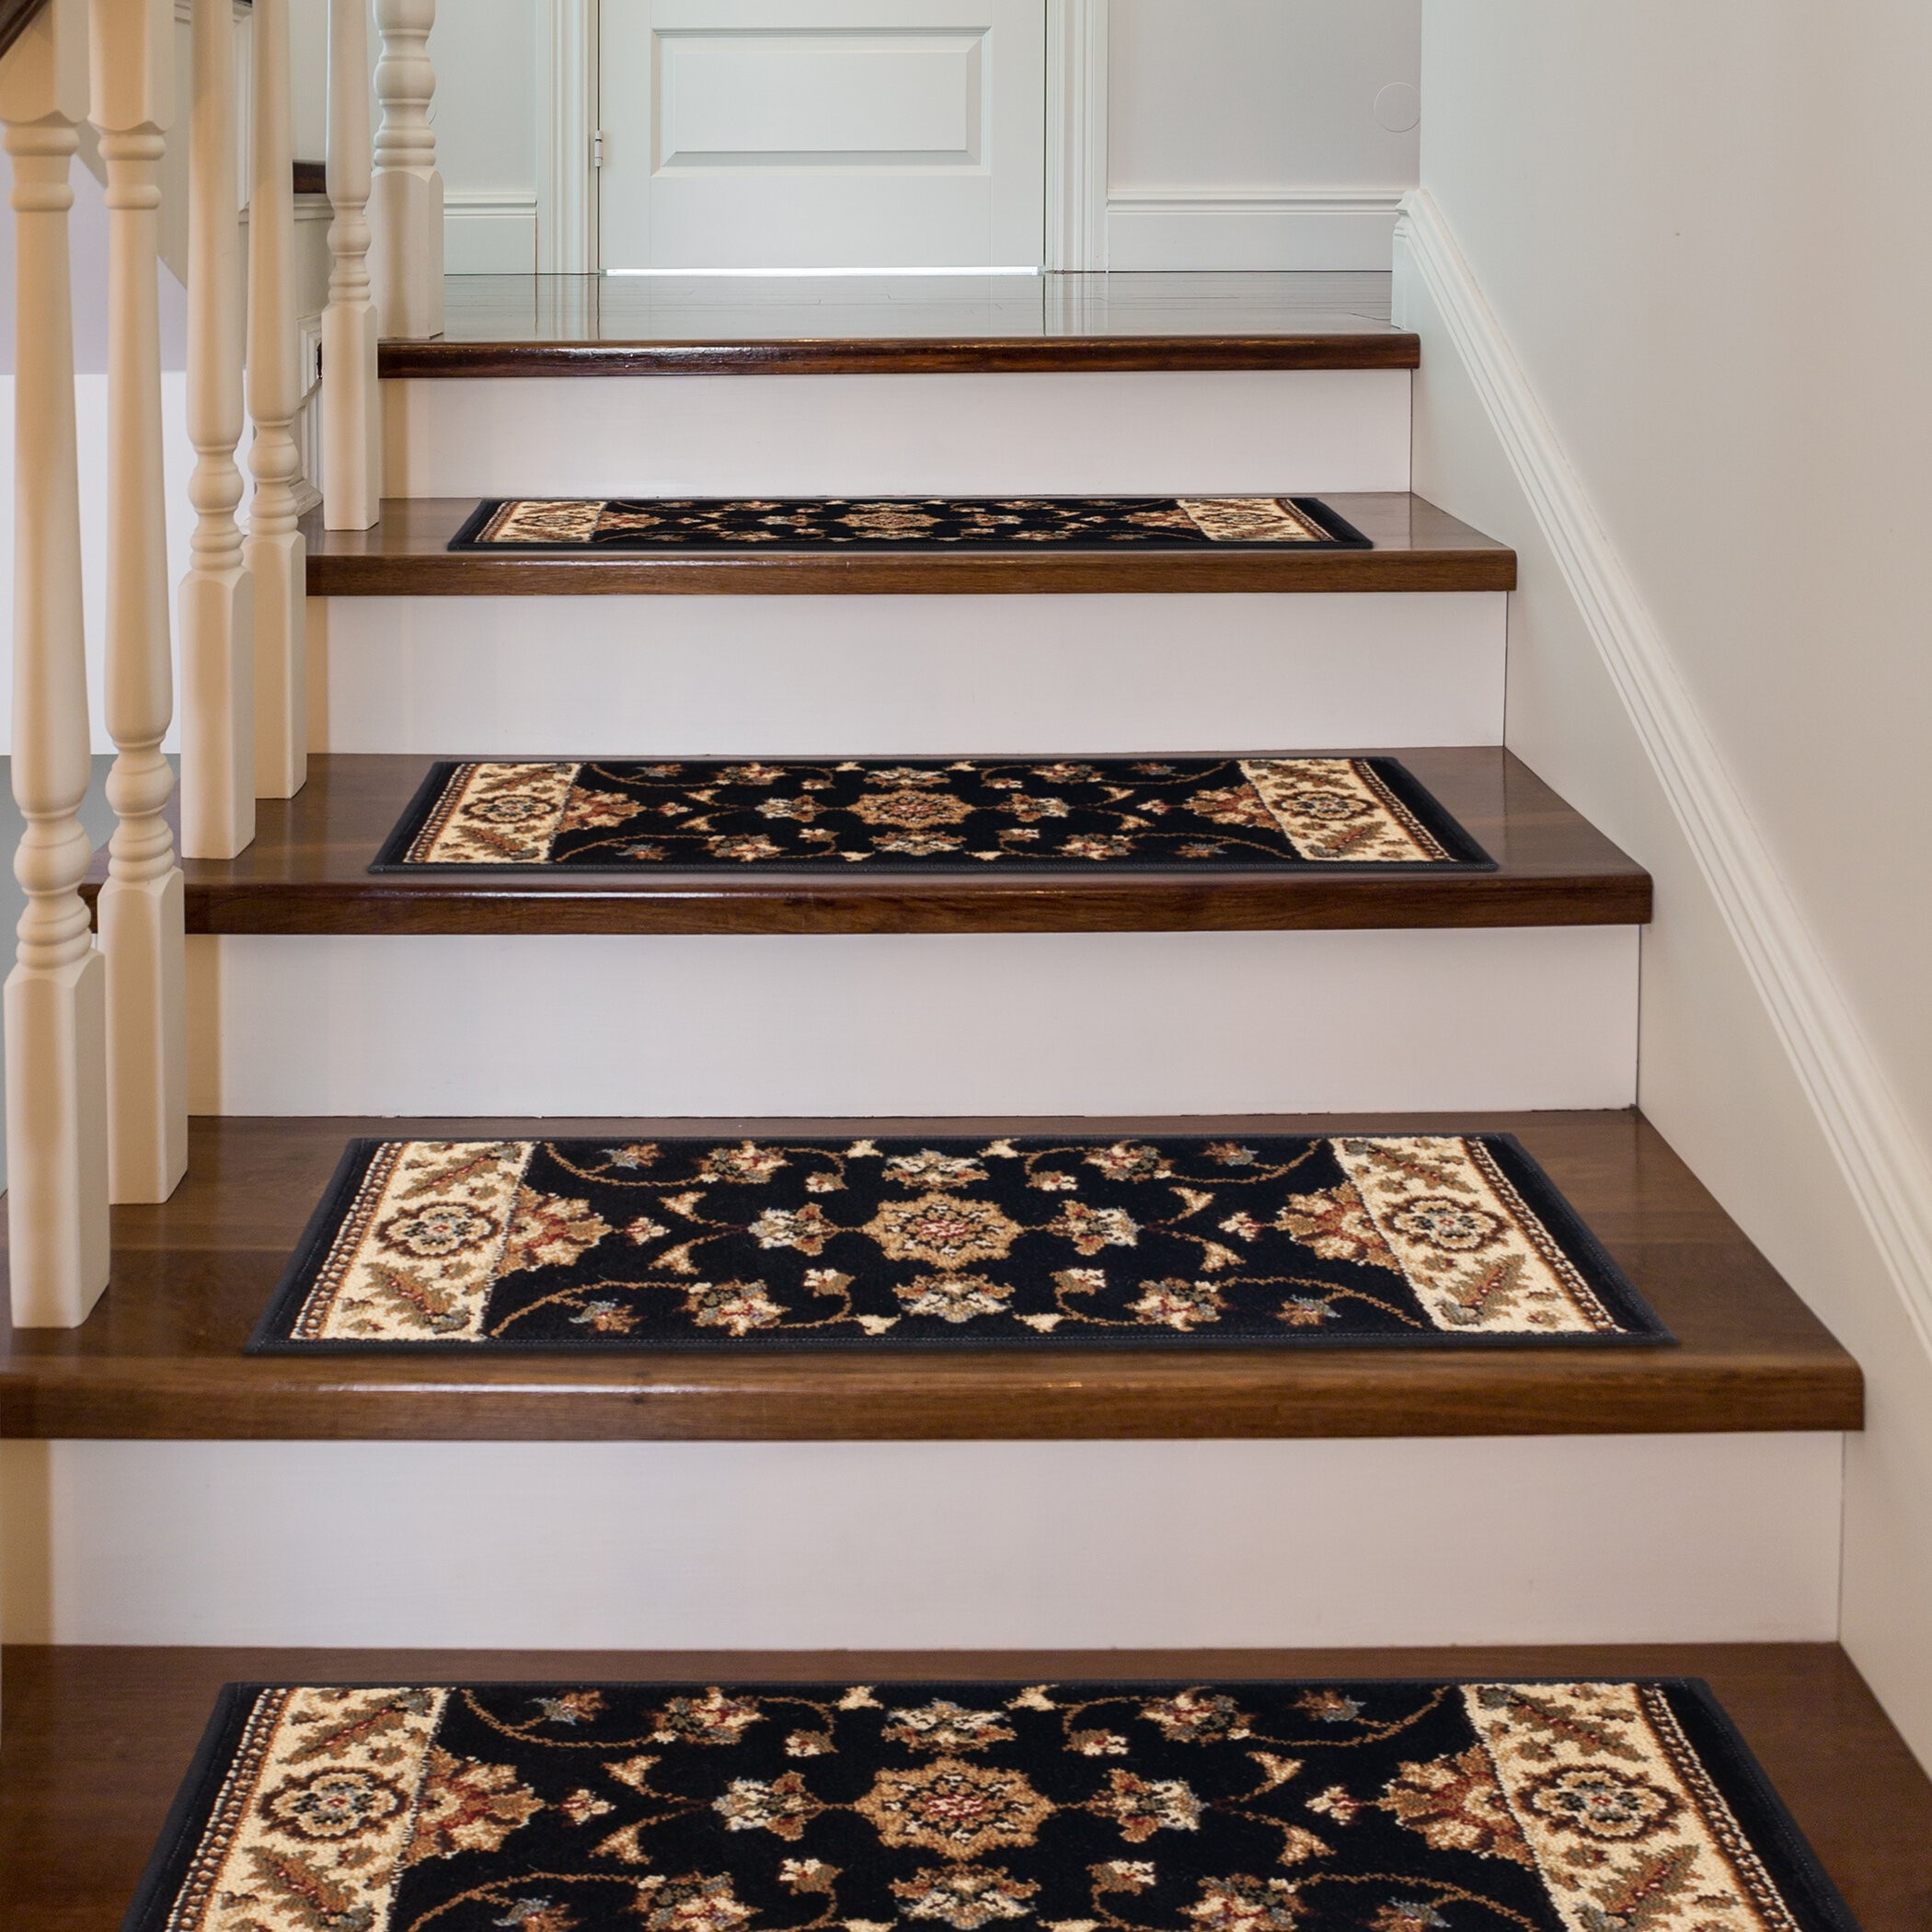 Stair Tread Rugs For 2020 Ideas On Foter   Oriental Rug Stair Treads   Flooring   Amazon   Non Slip   Bullnose Stair   Kings Court